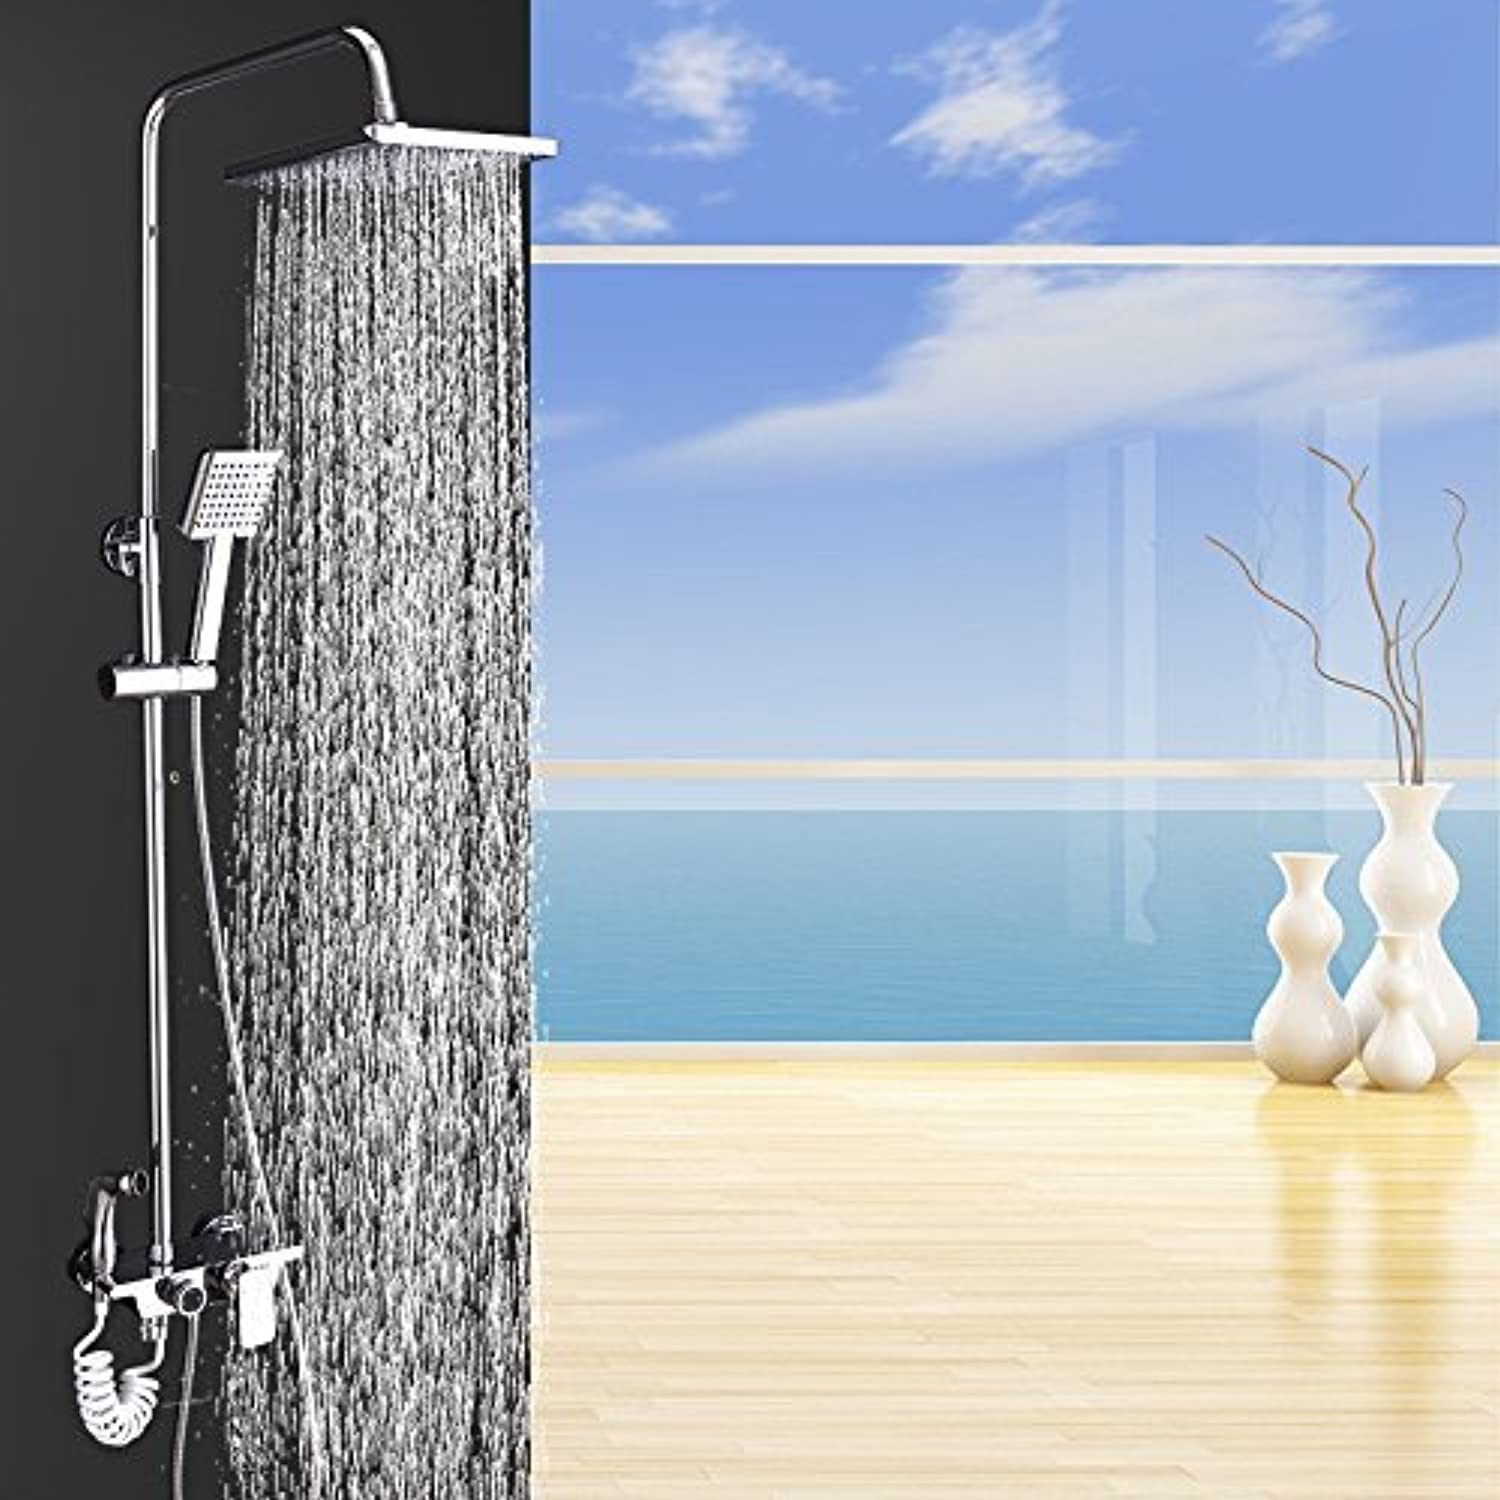 Home Bathroom Bath-Tub Shower Multi Chrome Features Four Washers Sprinkler Costume Sprinklers at Hand Lift Constant Temperature